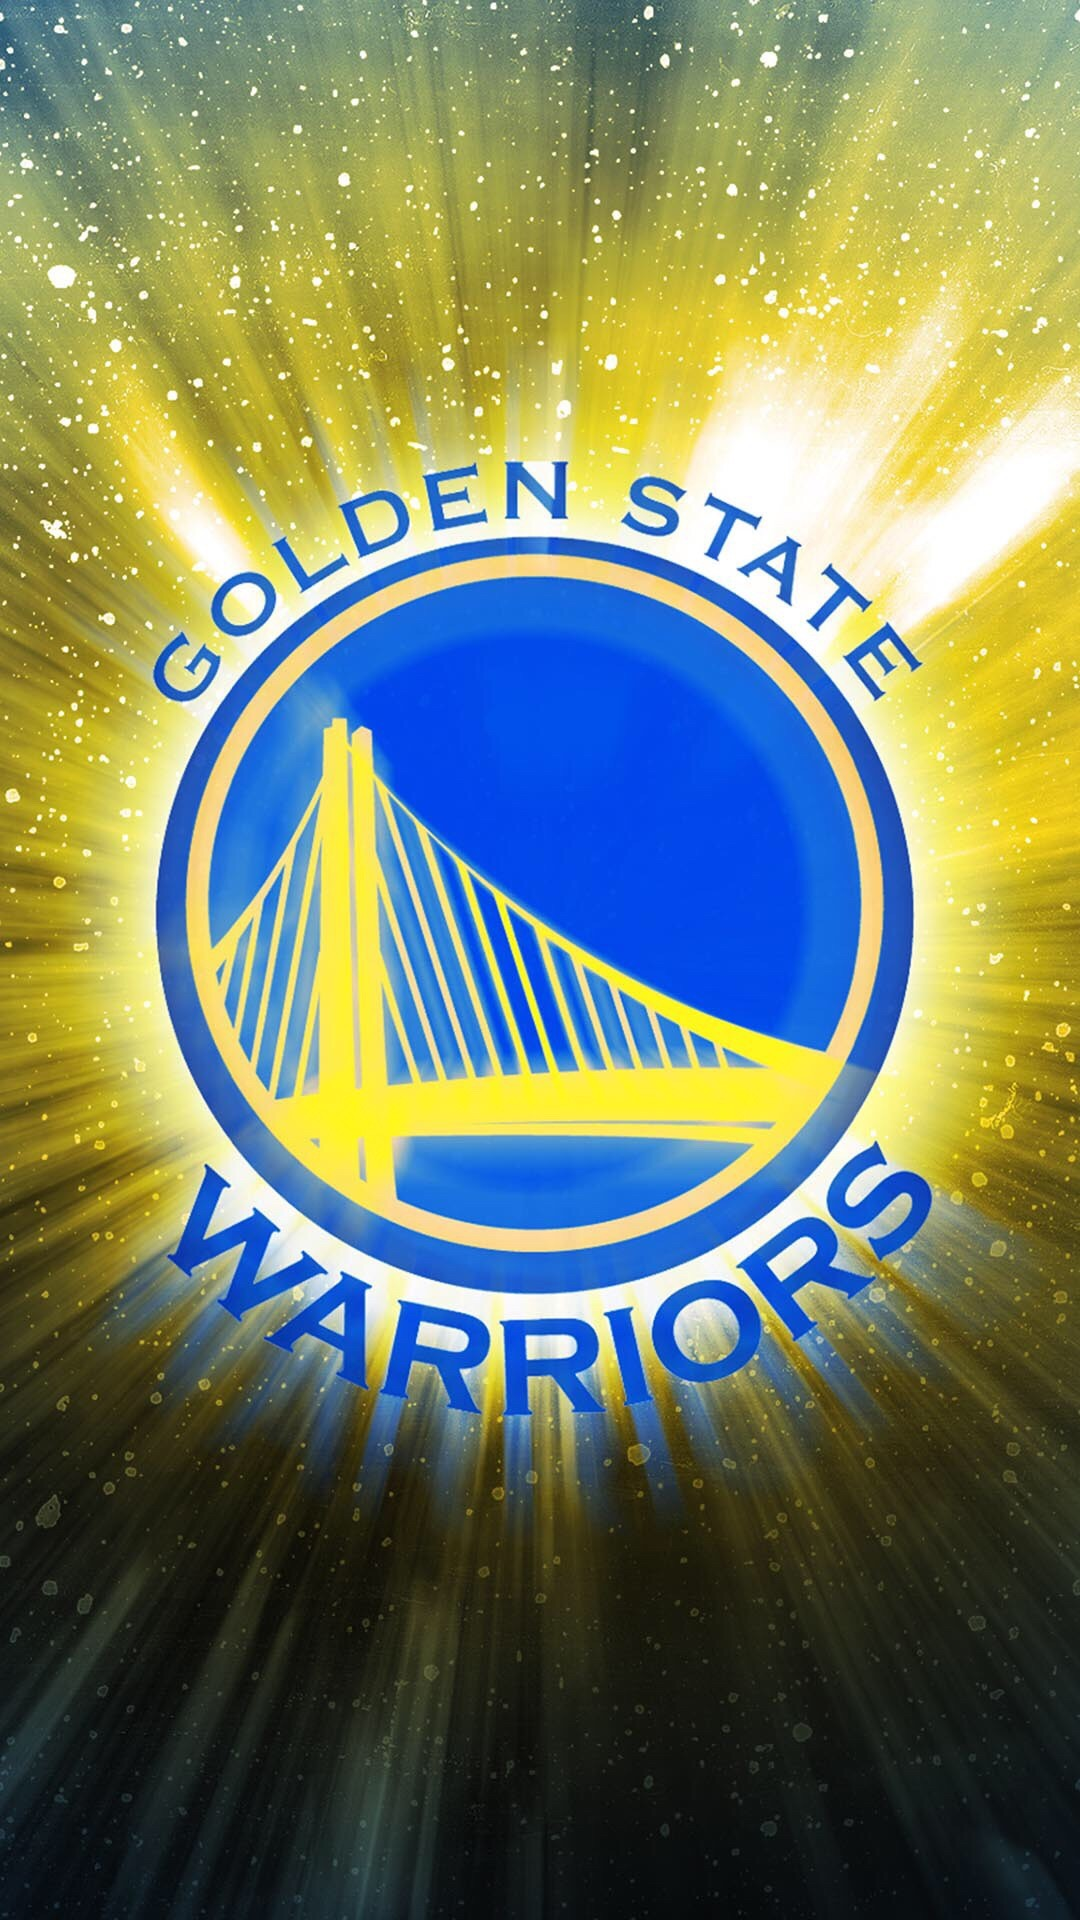 1080x1920 Golden State Warriors wallpapers for iPhone